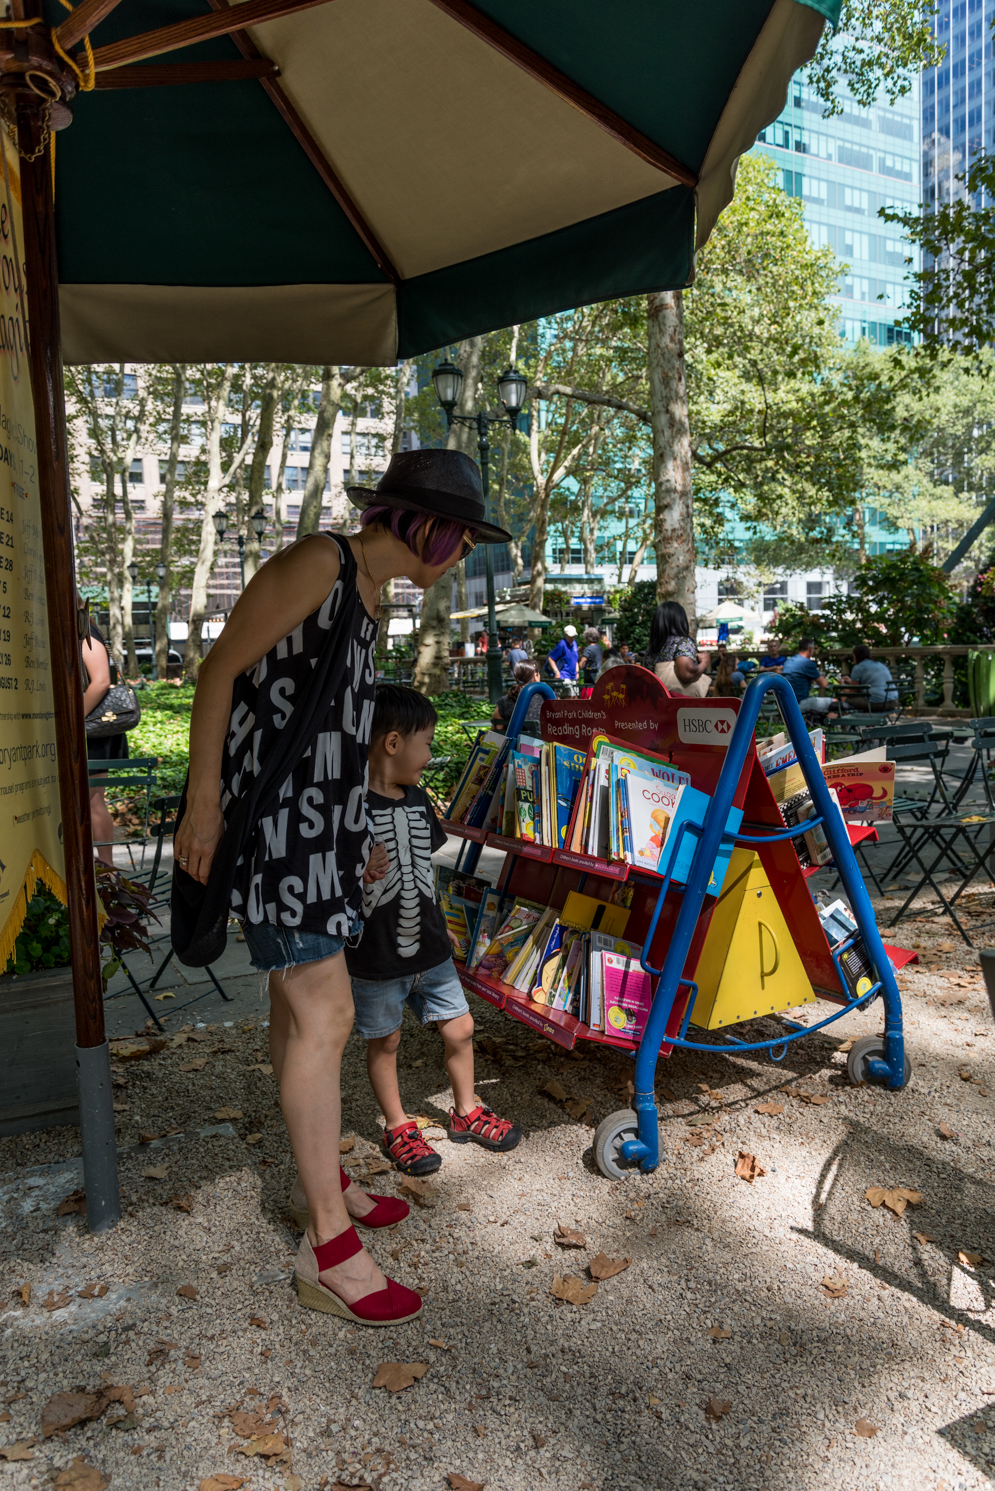 ROCK MAMA NYC LIFESTYLE BLOG - FUN SUMMER TIME AT BRYANT PARK